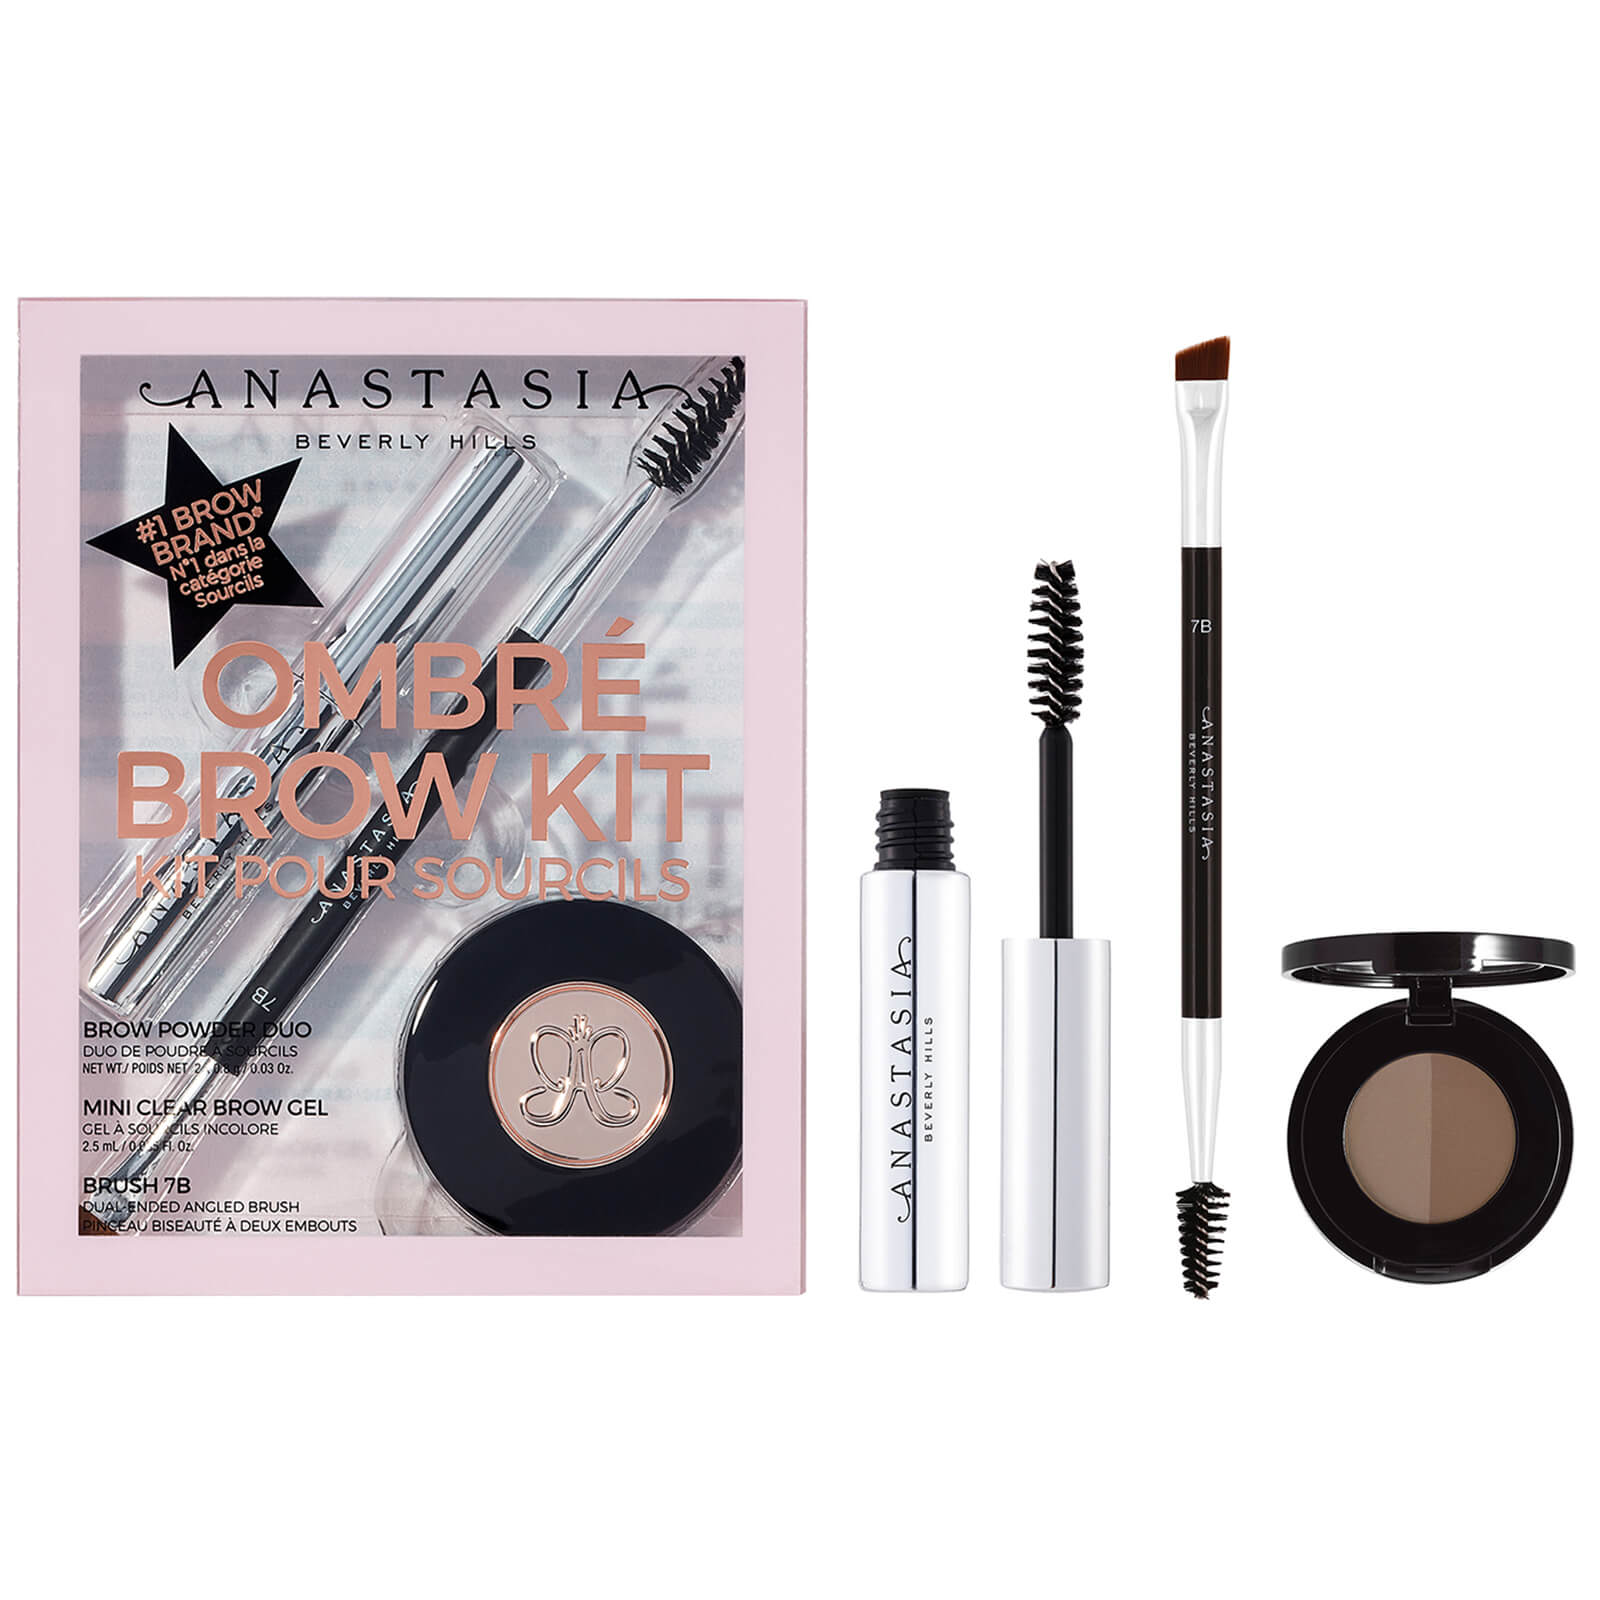 Anastasia Beverly Hills Brow Kit #3 Ombre Brow Kit 8.97g (Various Shades) - Soft Brown